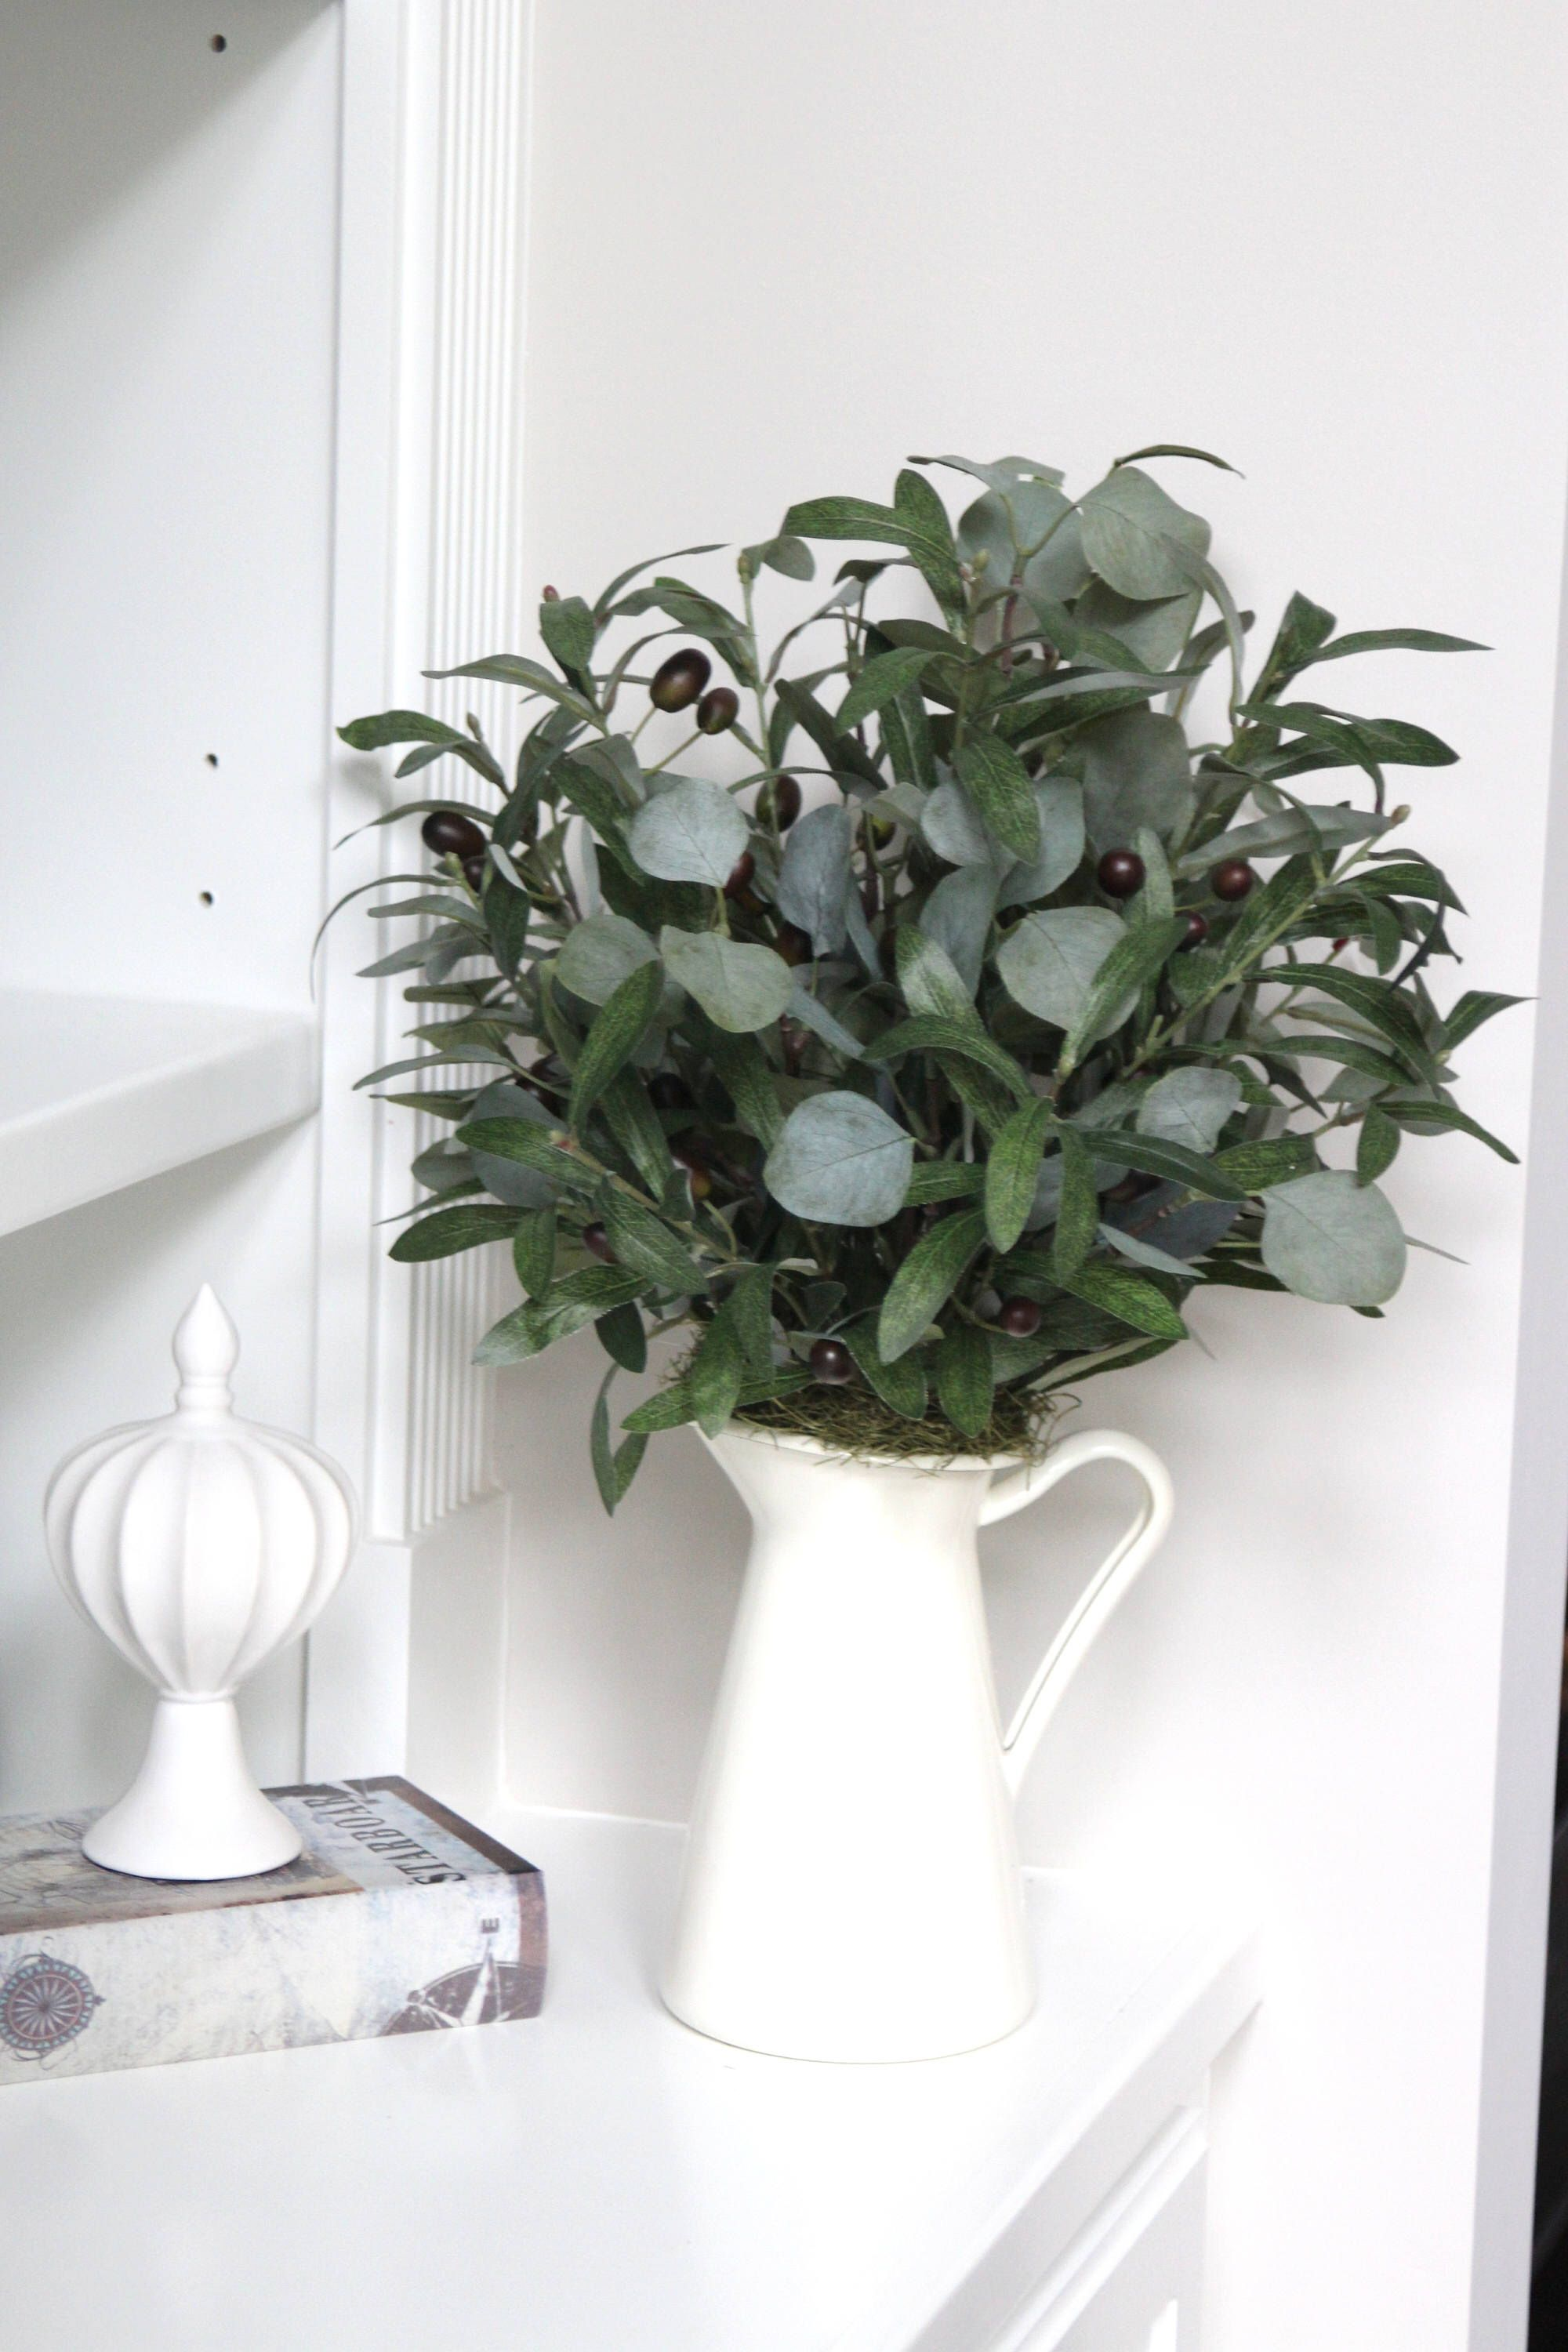 Farmhouse Decor, Faux Greenery Arrangement, Olive Branches And Eucalyptus In